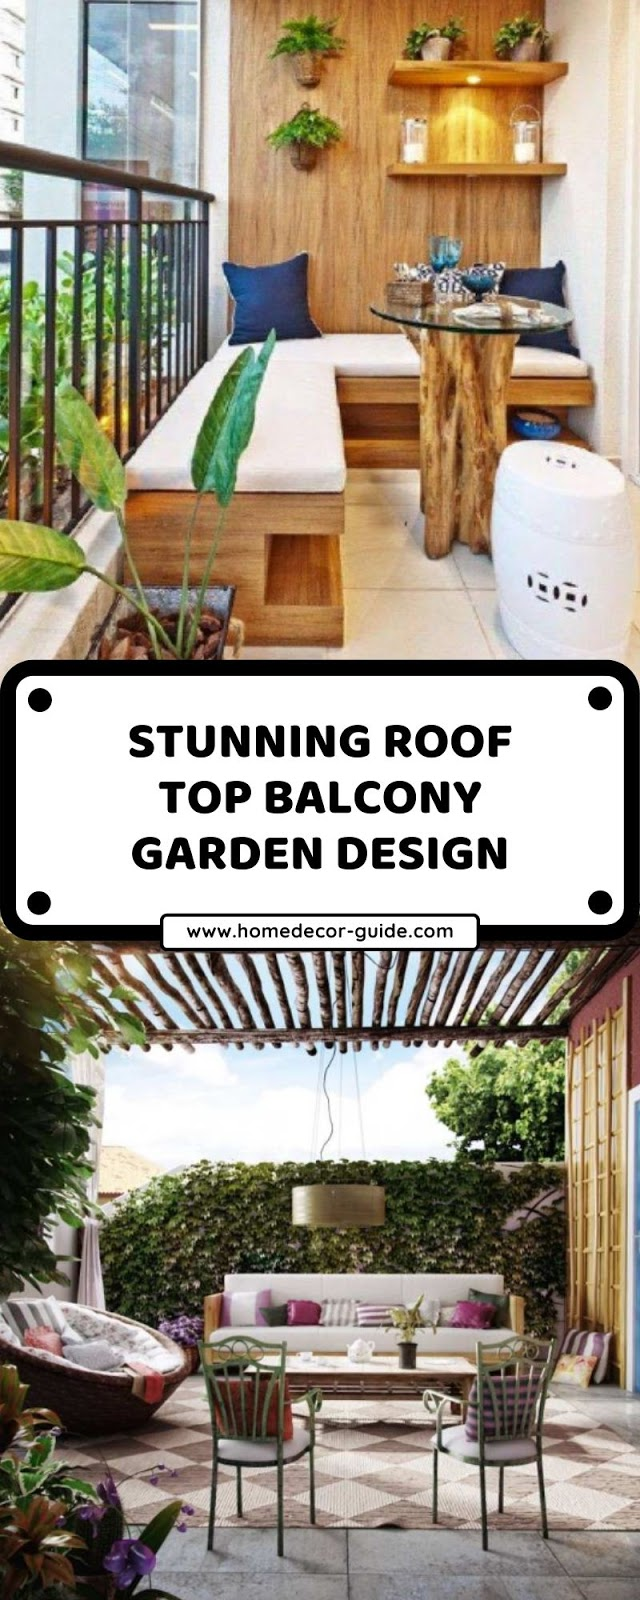 STUNNING ROOF TOP BALCONY GARDEN DESIGN